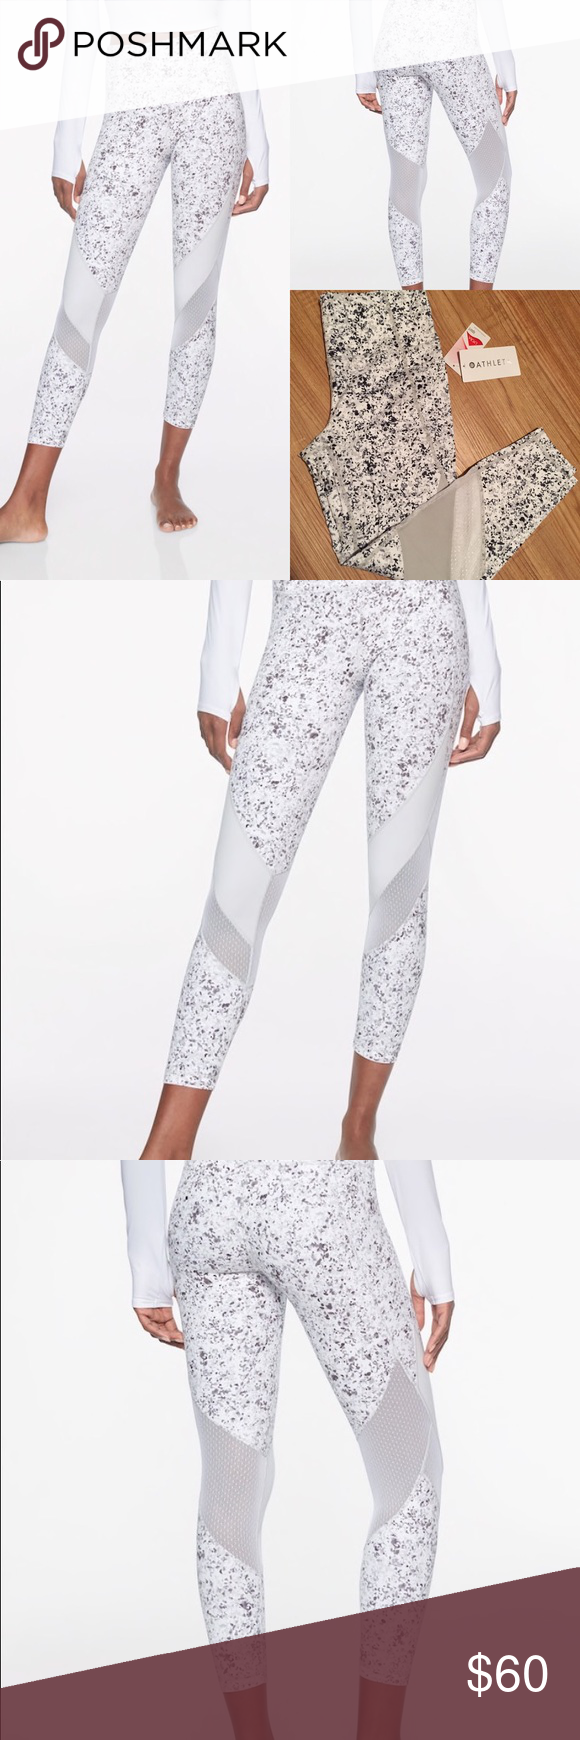 cb63982bf0 Athleta Sandstone PowerVita Salutation 7/8 Tights PowerVita fabric Fitted,  High rise Fits next